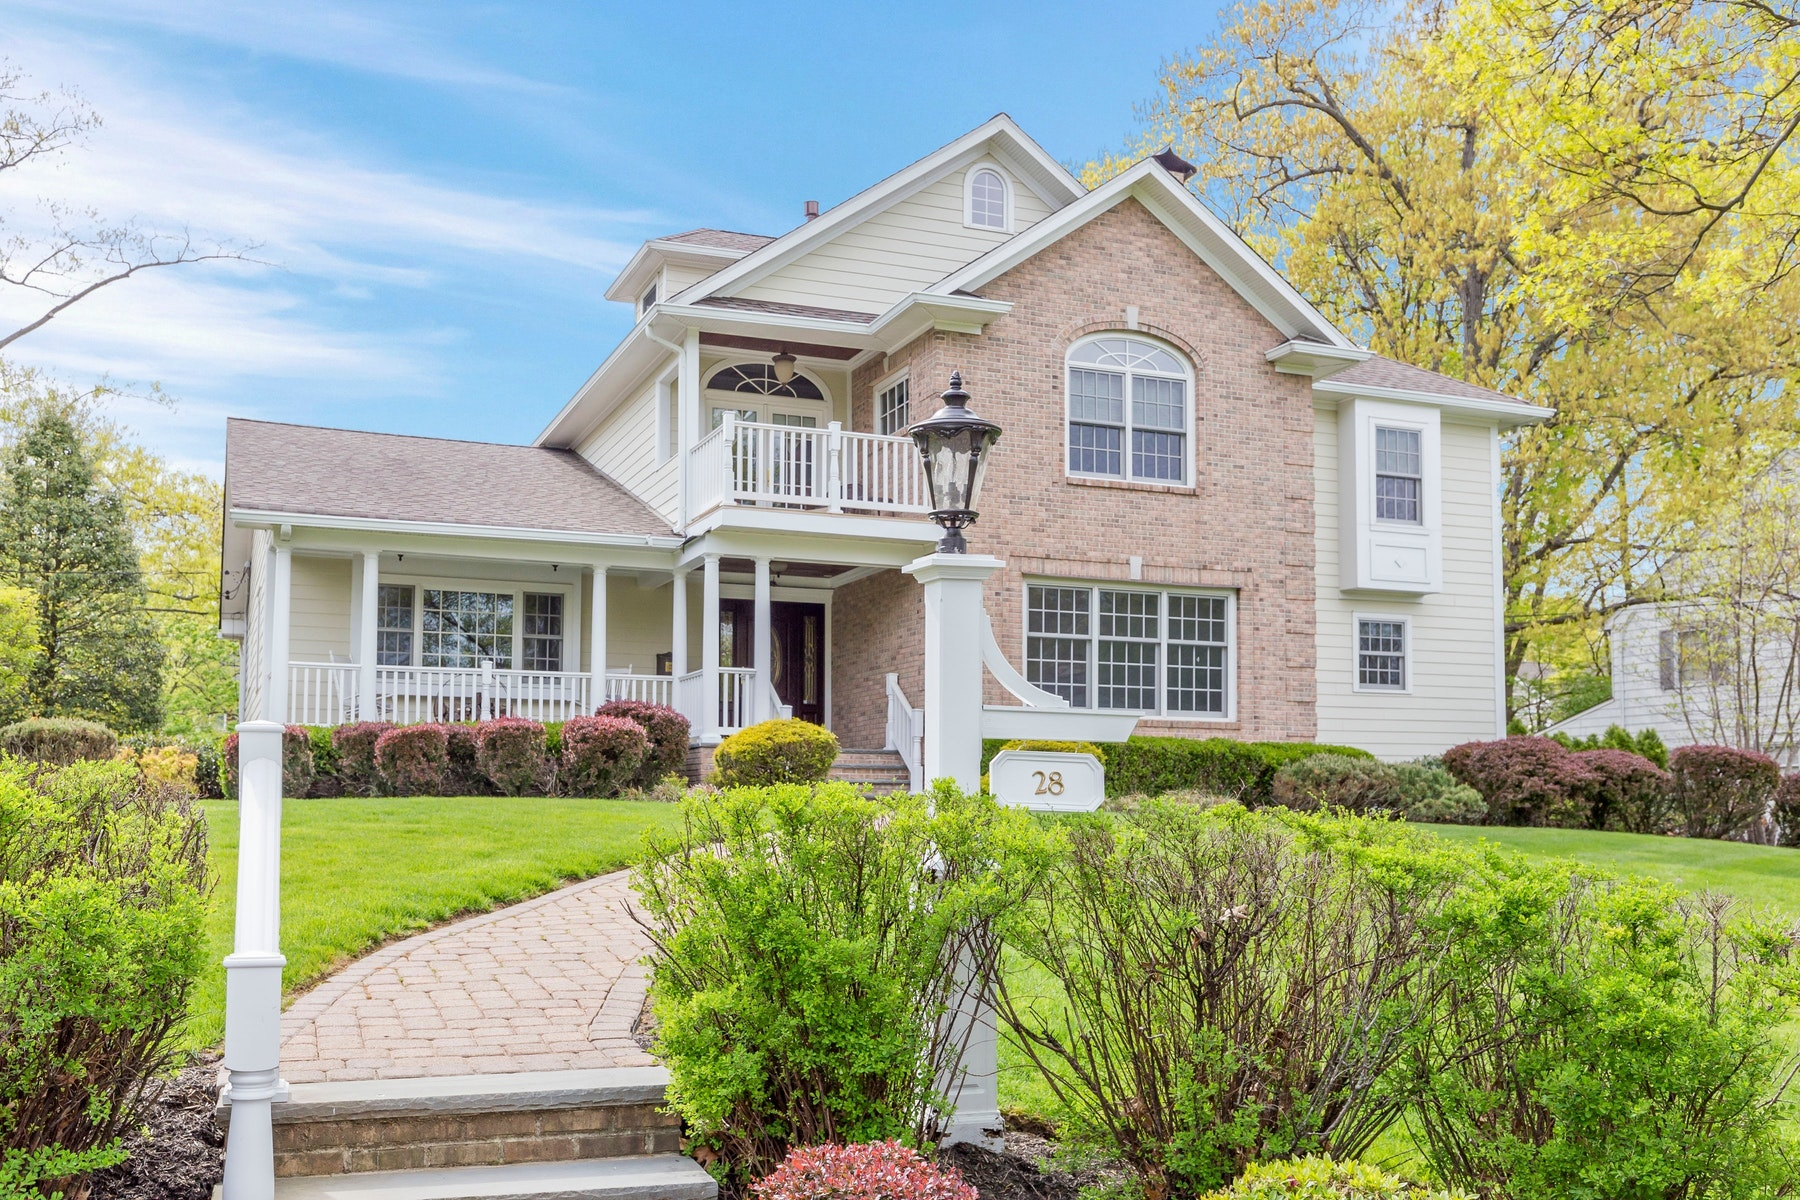 Single Family Homes for Sale at Architects own home! 28 Burrington Gorge Westfield, New Jersey 07090 United States